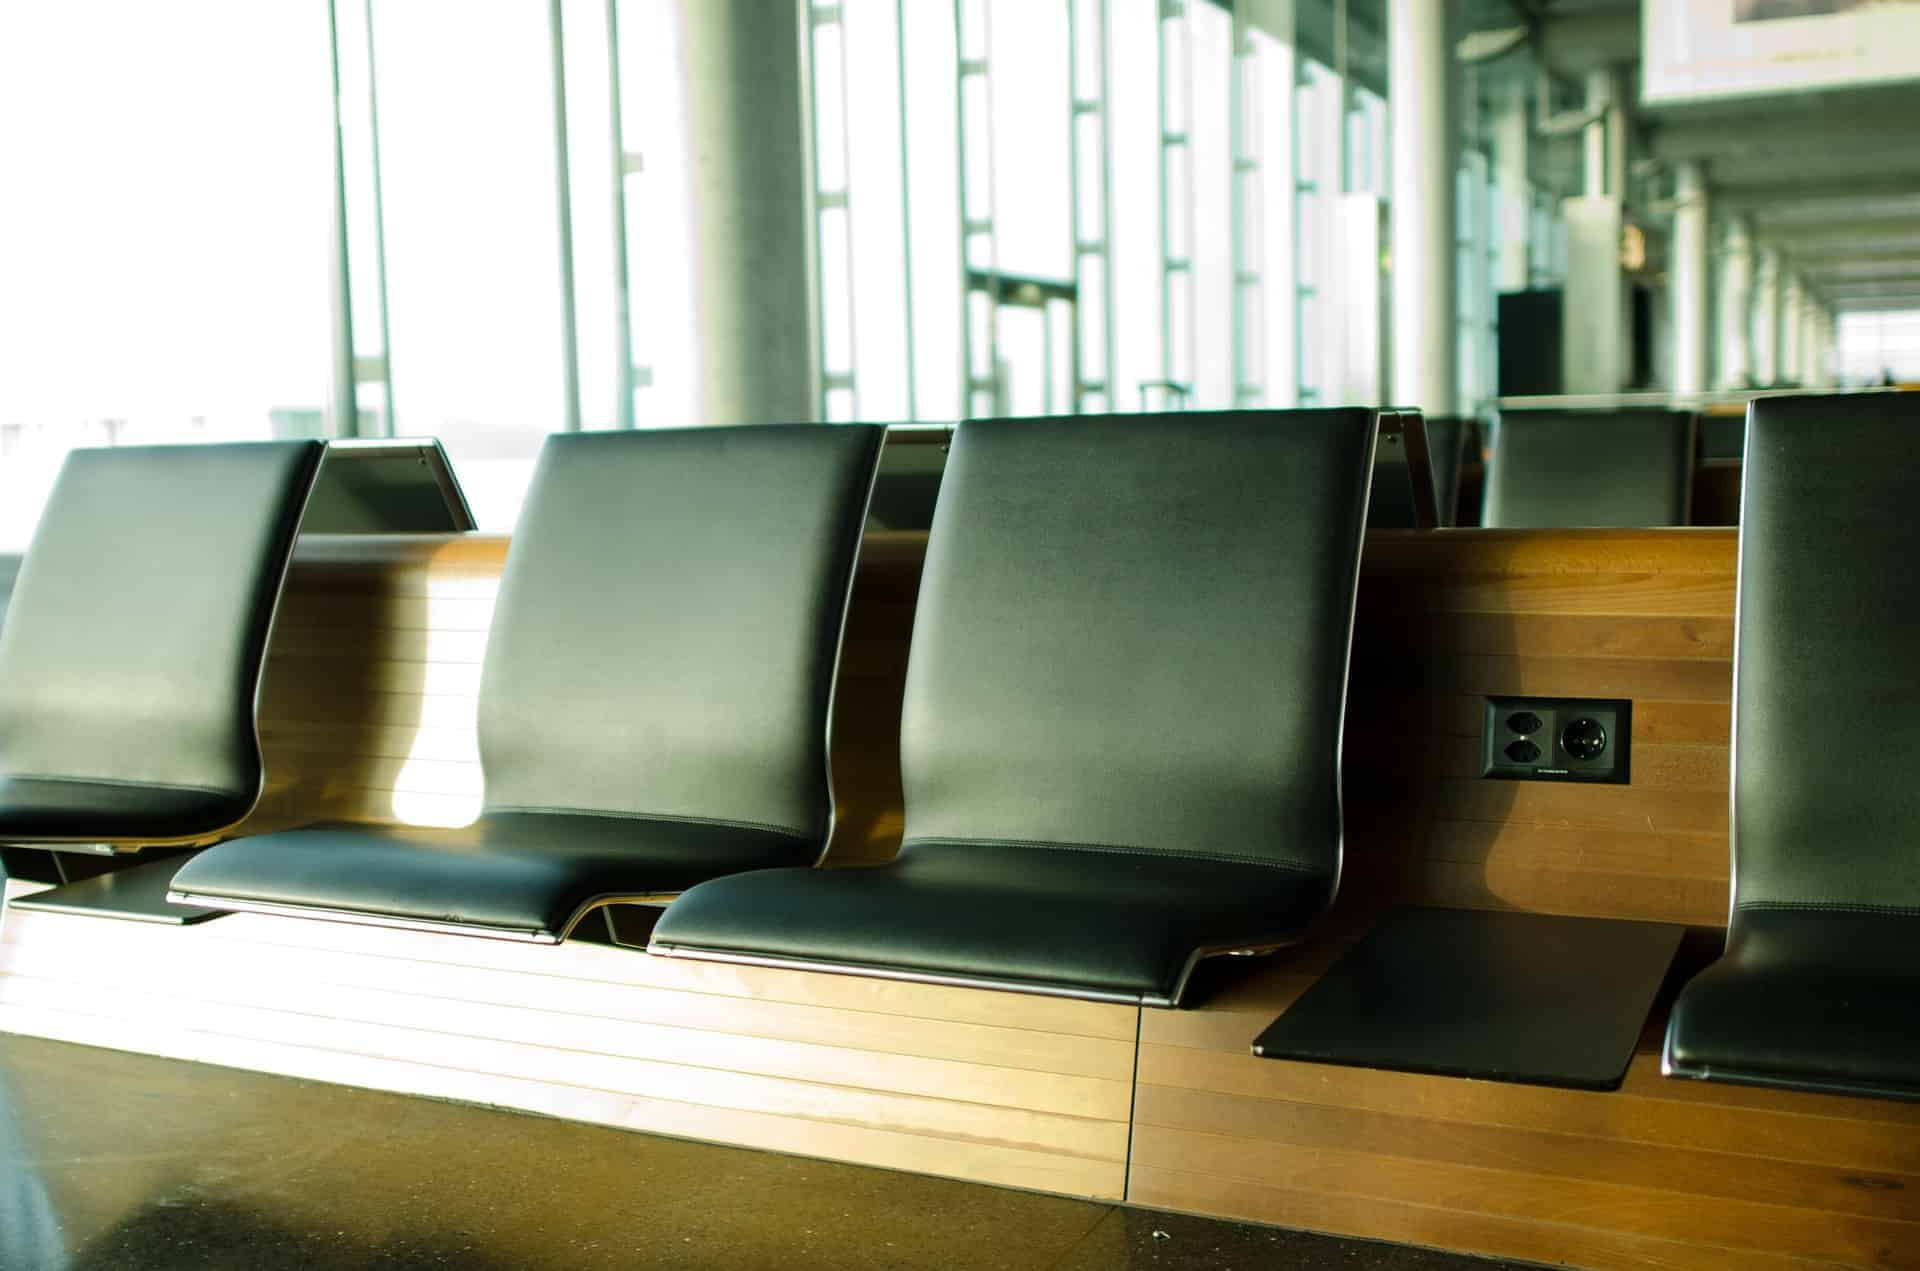 Faux Leather Airport Seating - Liberty Leather Goods